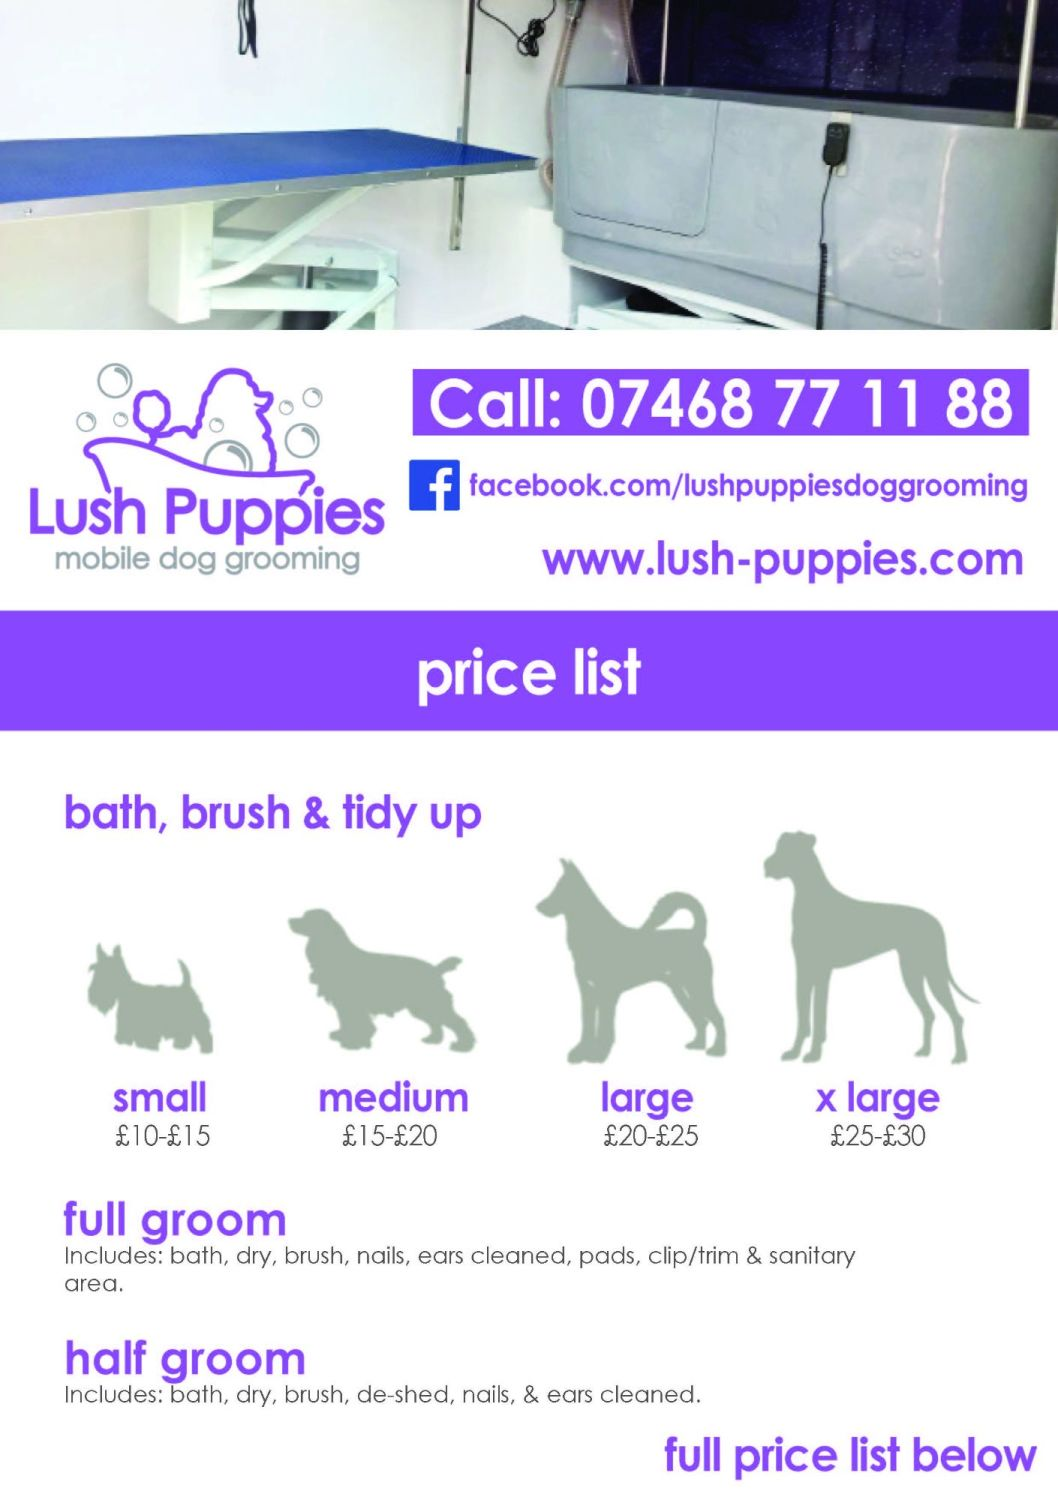 Dog Grooming Price List Design & 3 Copies Printed and Laminated